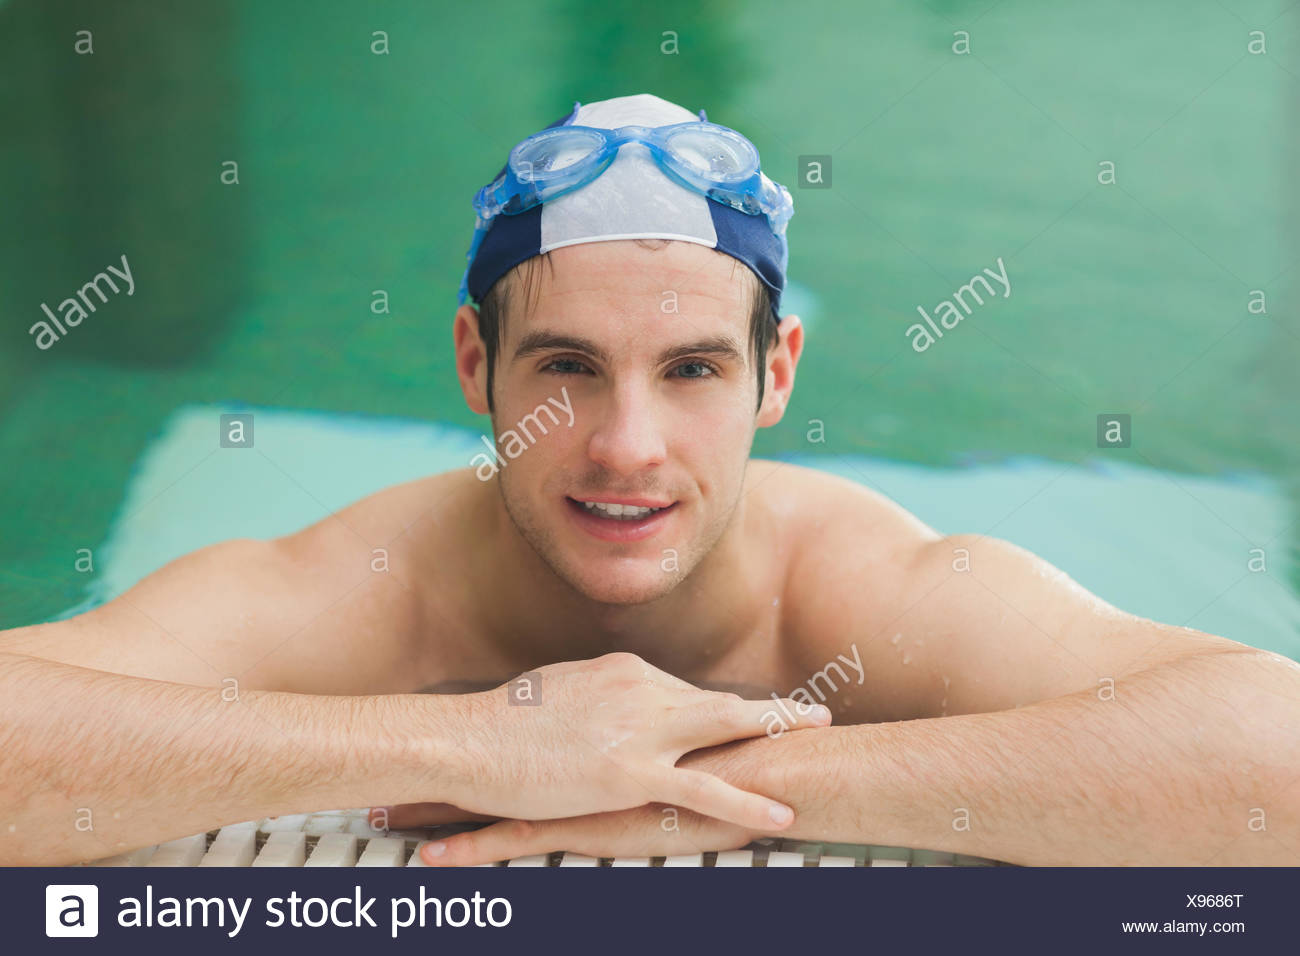 Happy man in the swimming pool Stock Photo